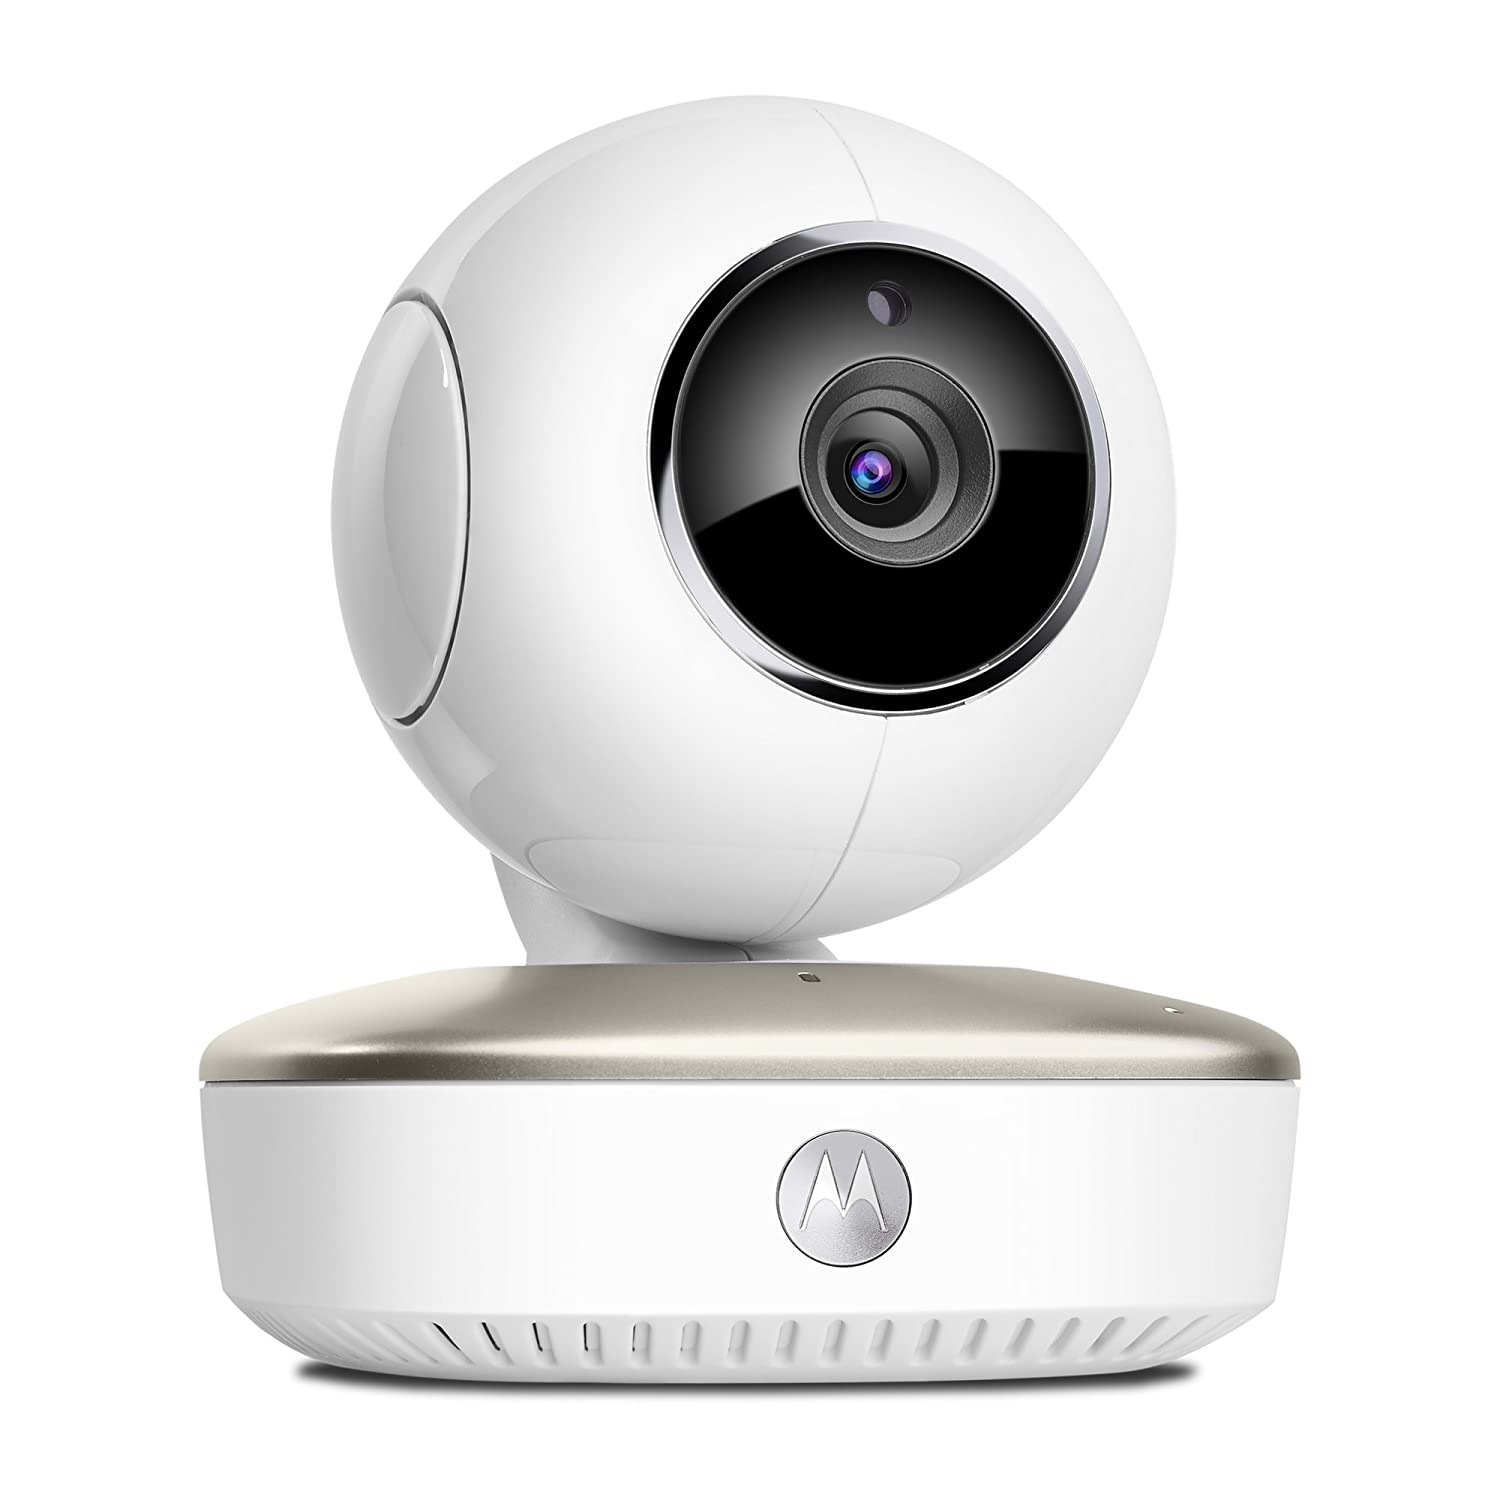 Motorola MBP67 Connect - Wi-Fi baby monitor video portatile con eco modo, rileva rumori, movimento e temperatura, Bianco PNI-MBP67